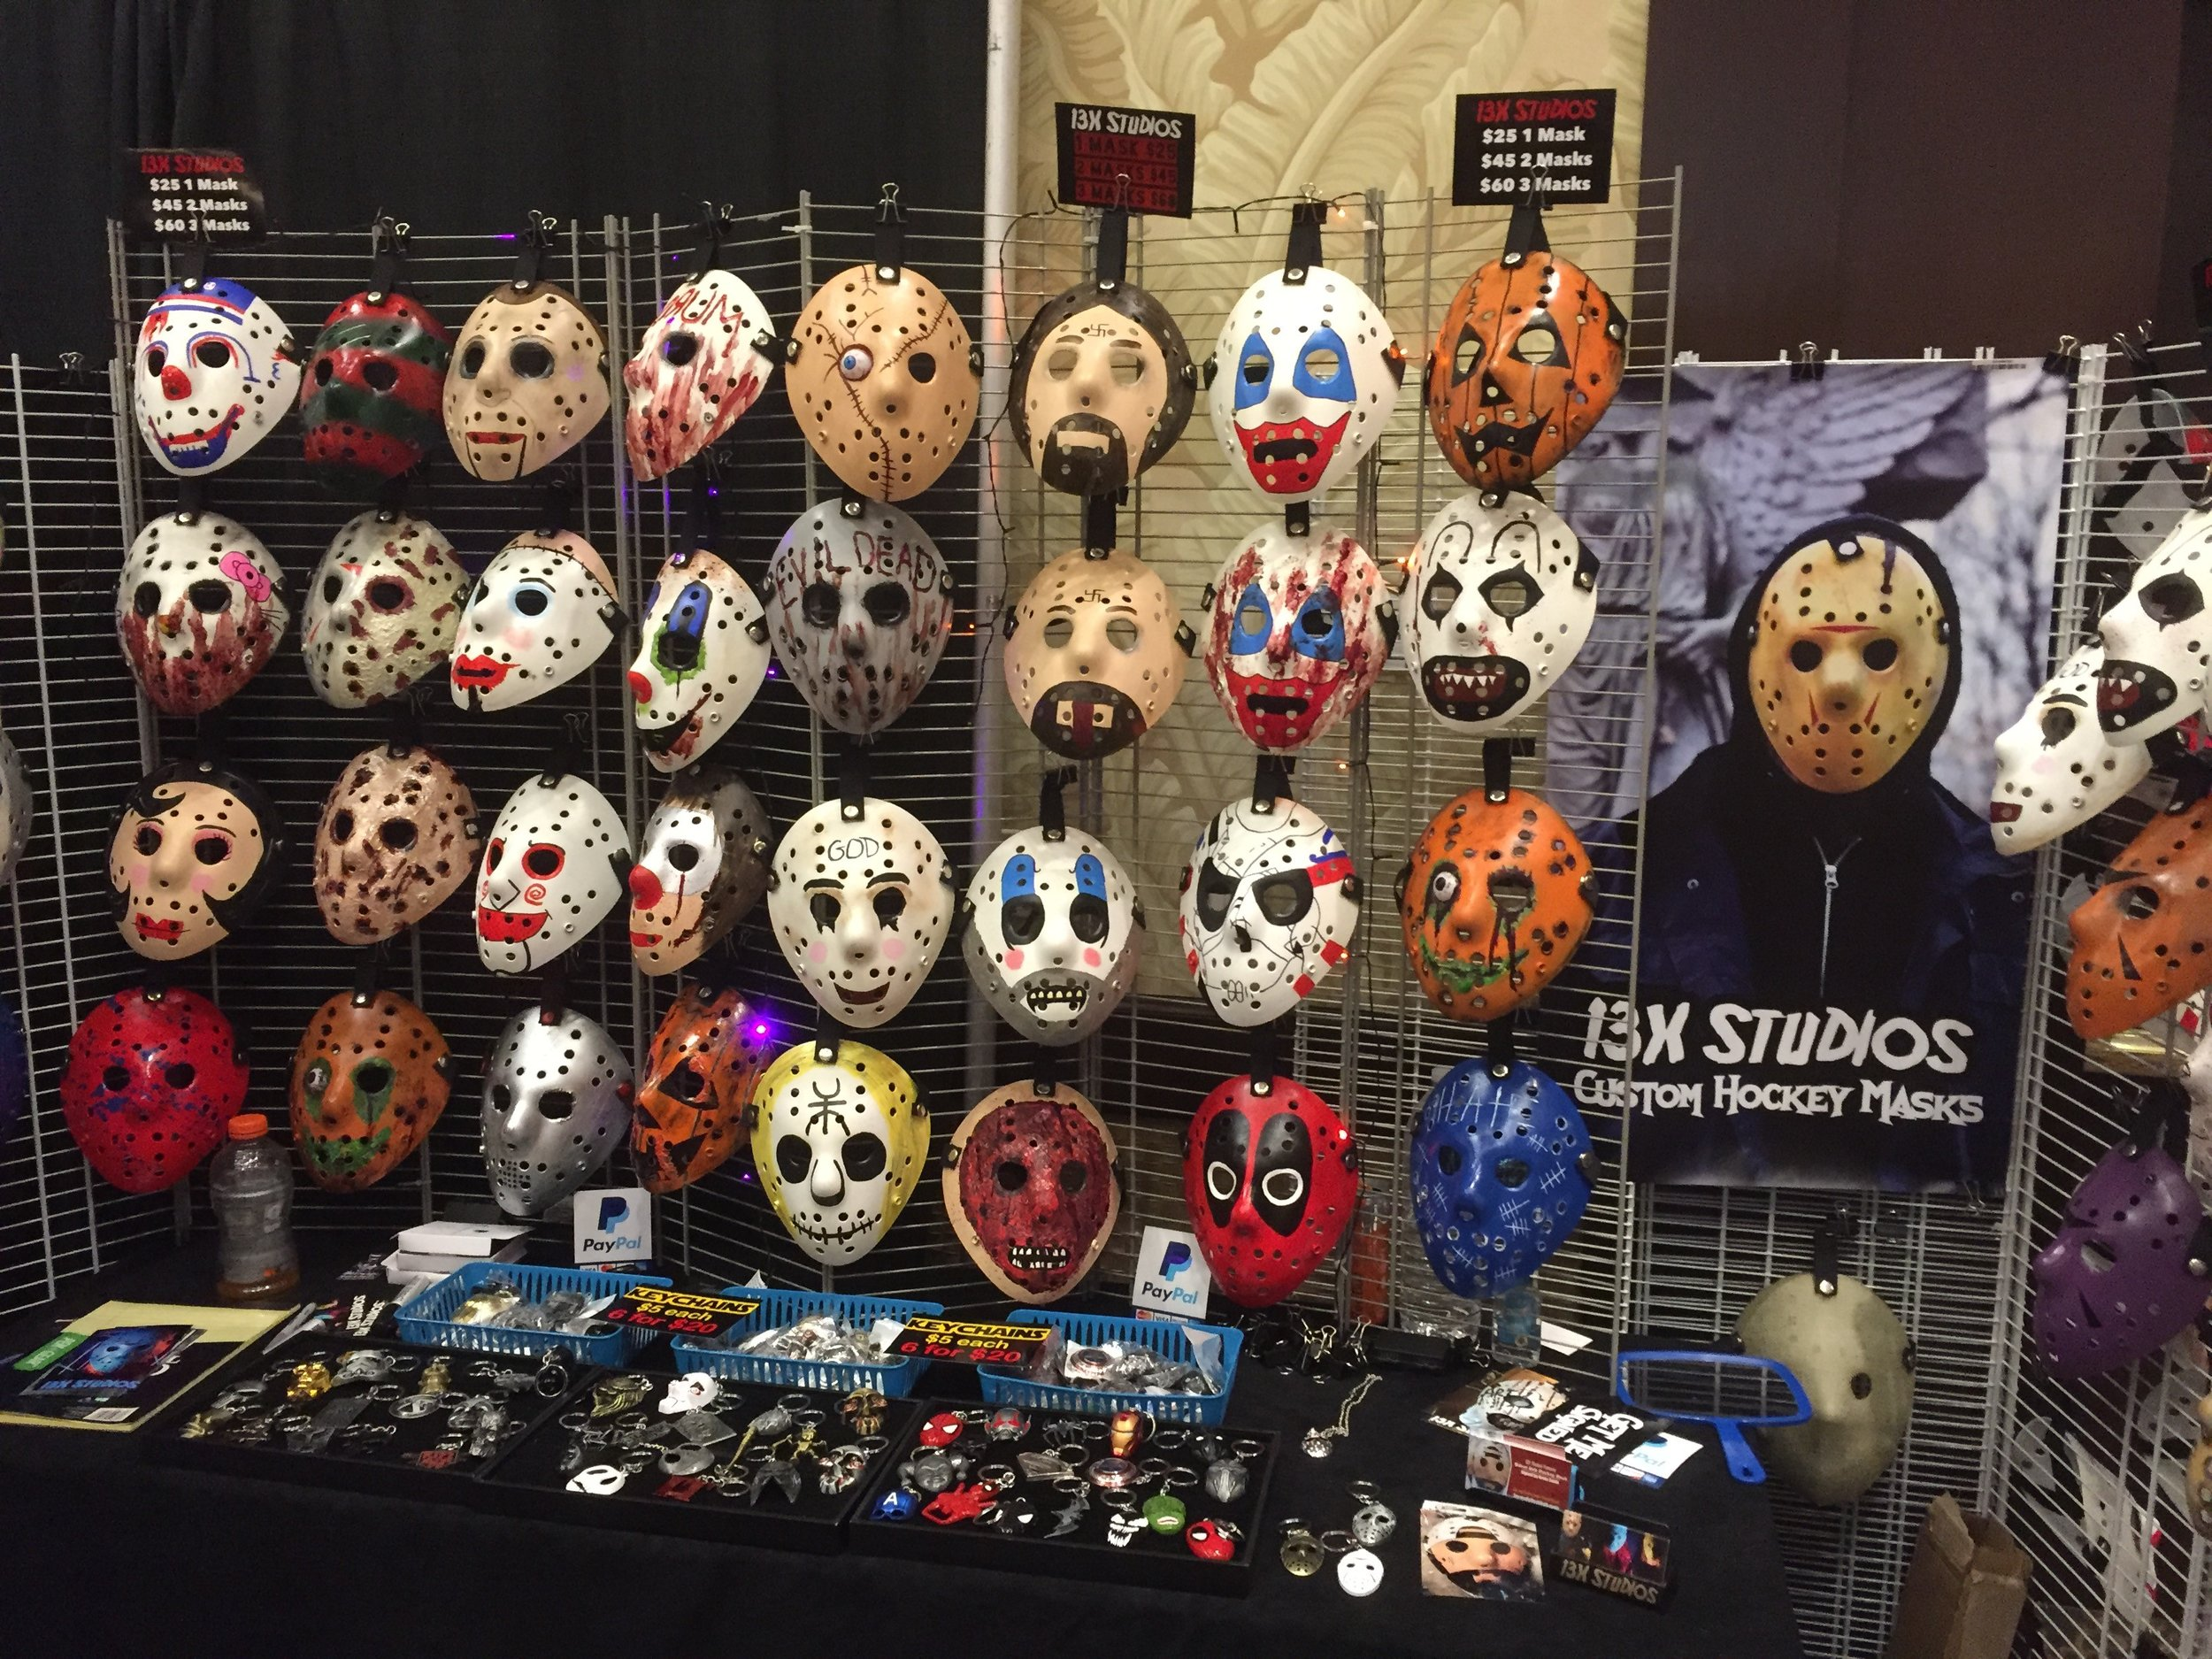 13X Studios, purveyor of custom hockey masks! They even made one for Mike Colter. Find them at  13xstudios.com